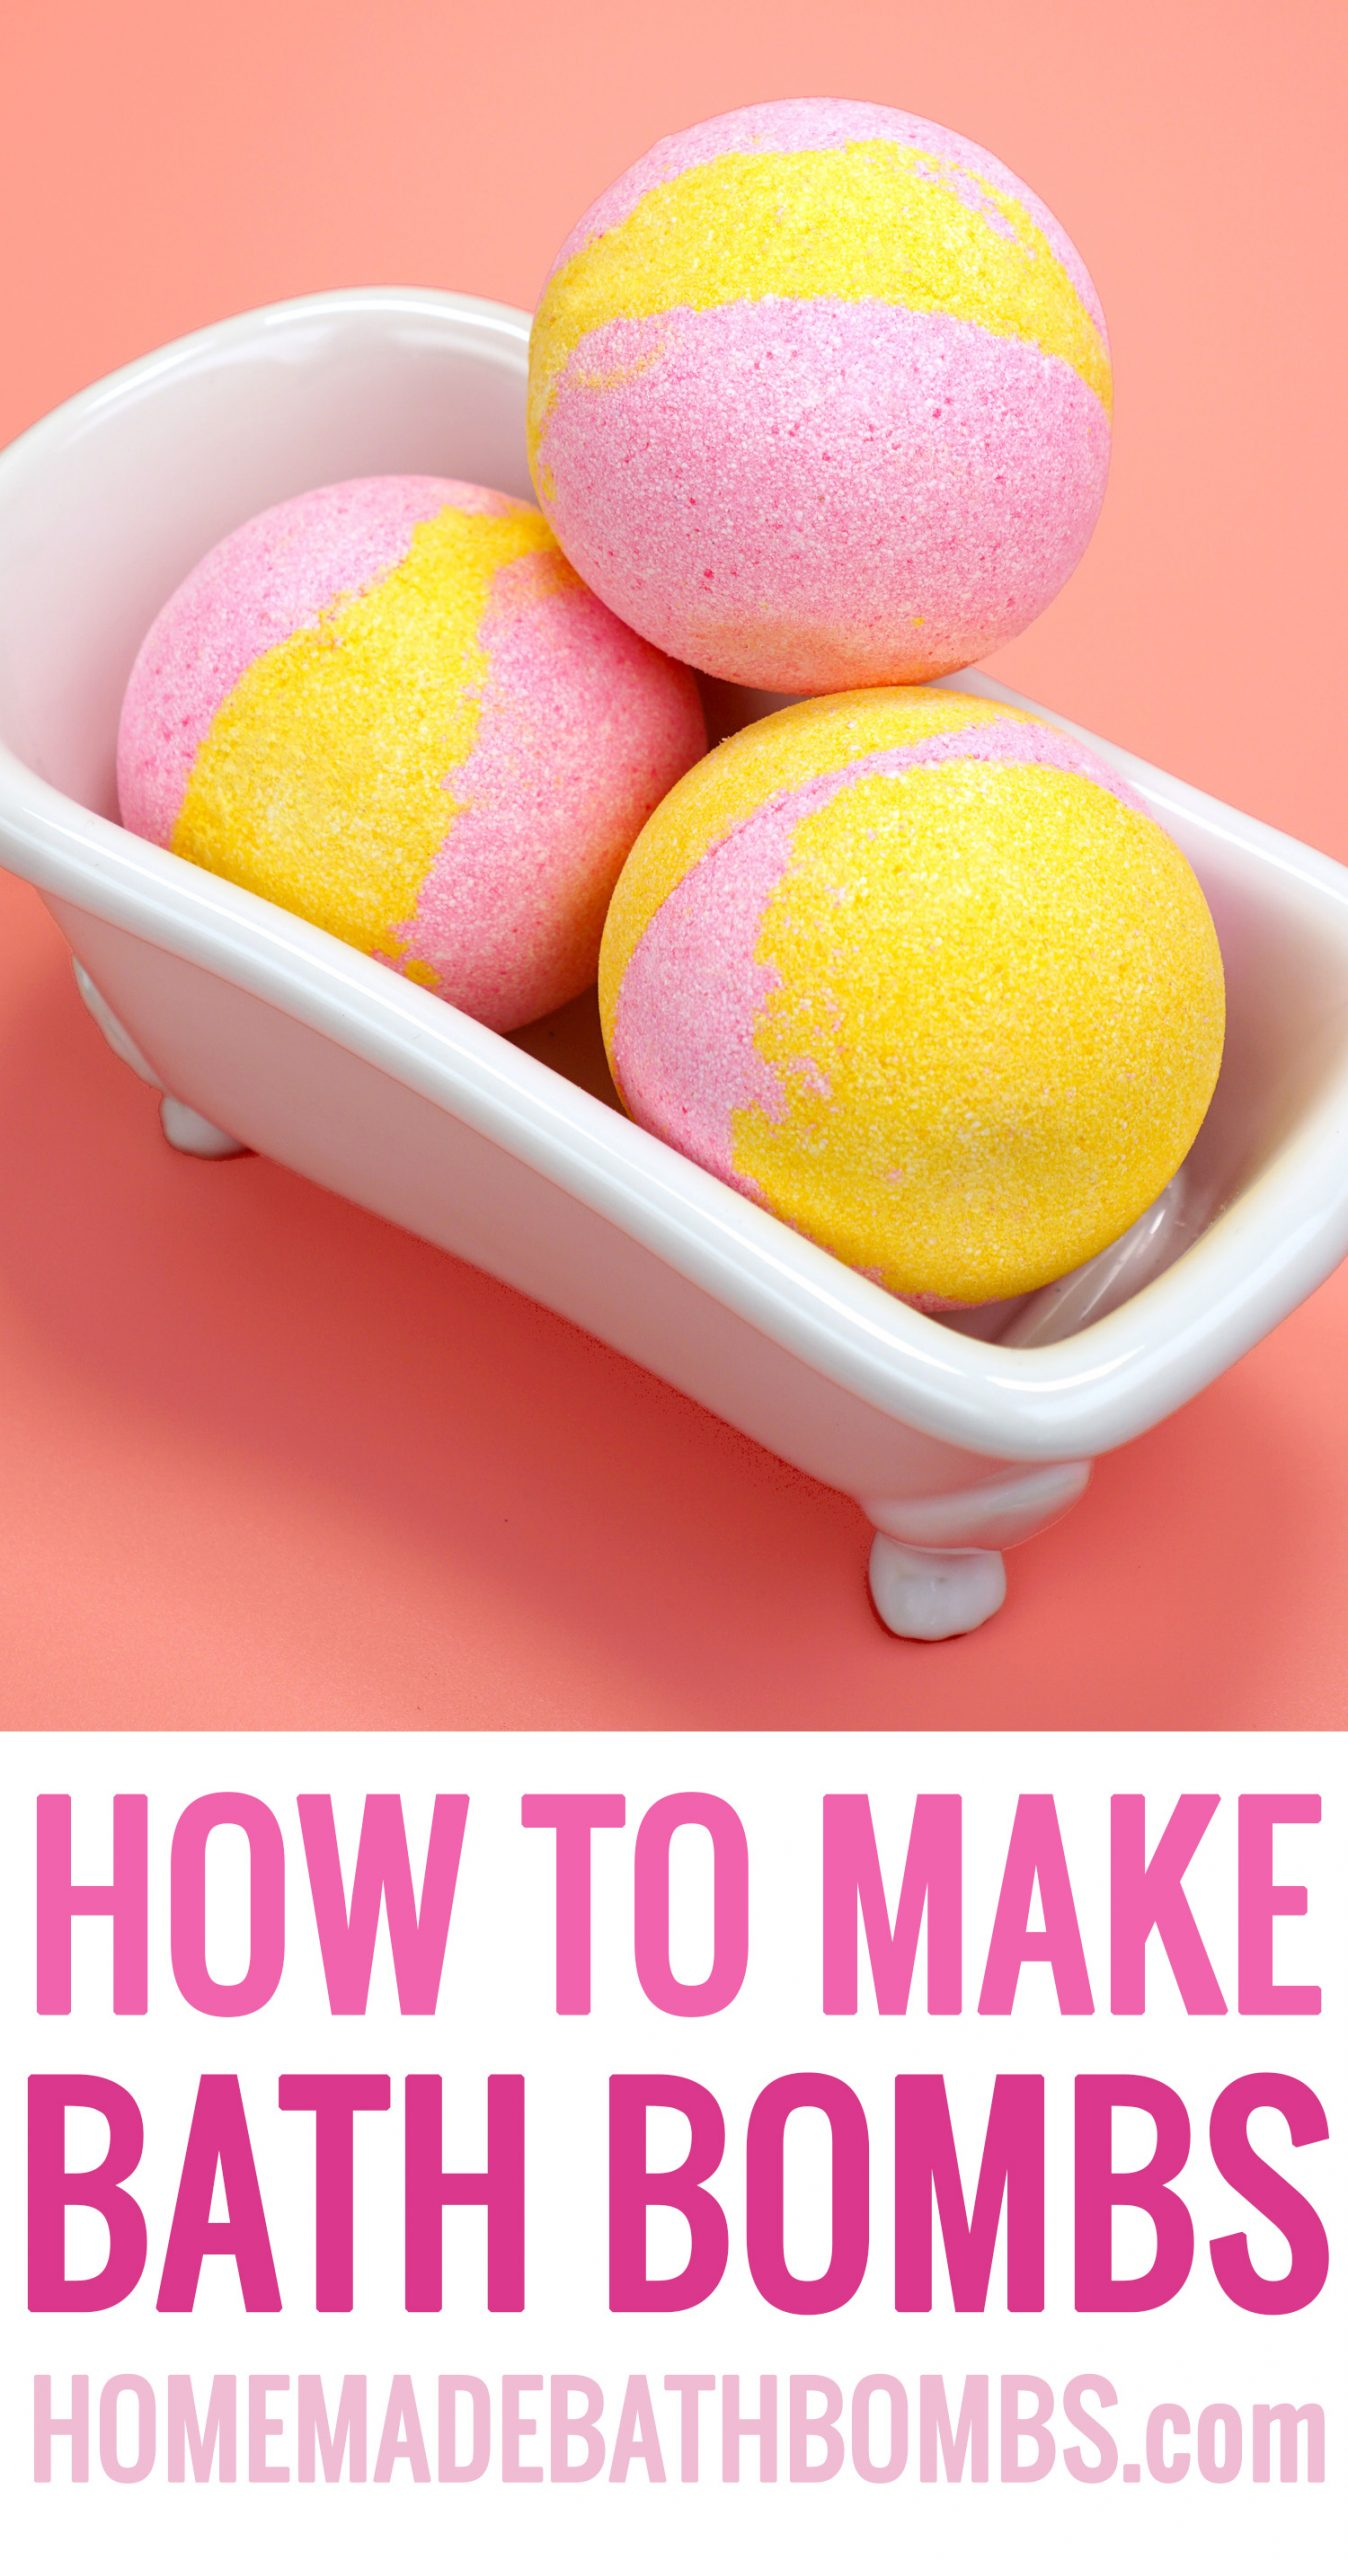 How to Make Bath Bombs - Recipe and Tutorial